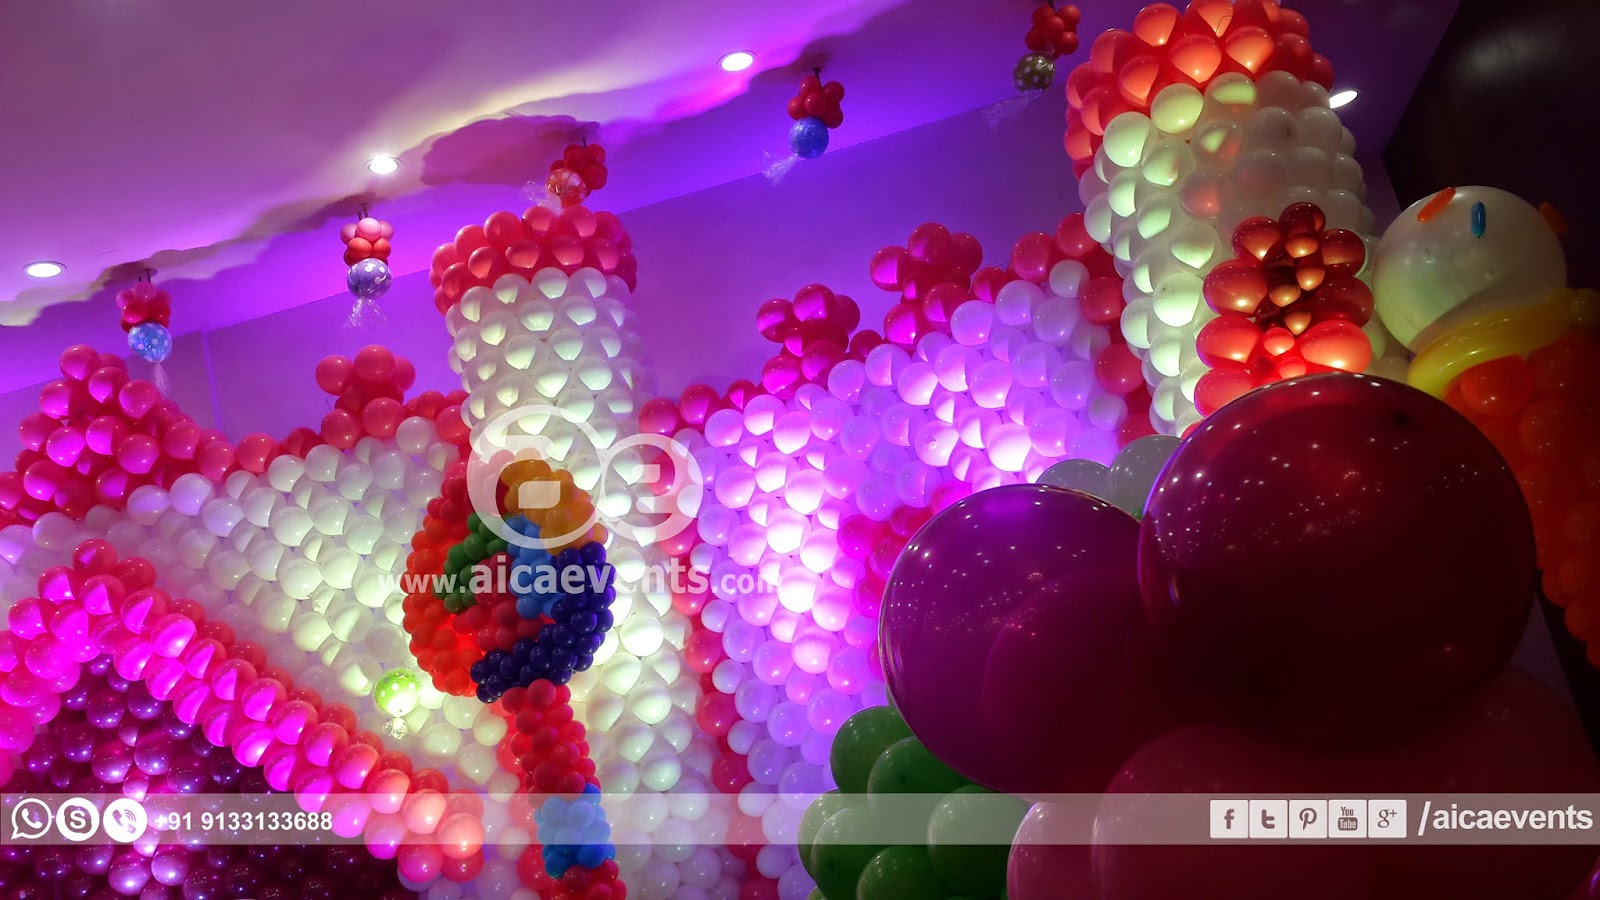 Aicaevents castle with balloon wall decoration for Balloon decoration on wall